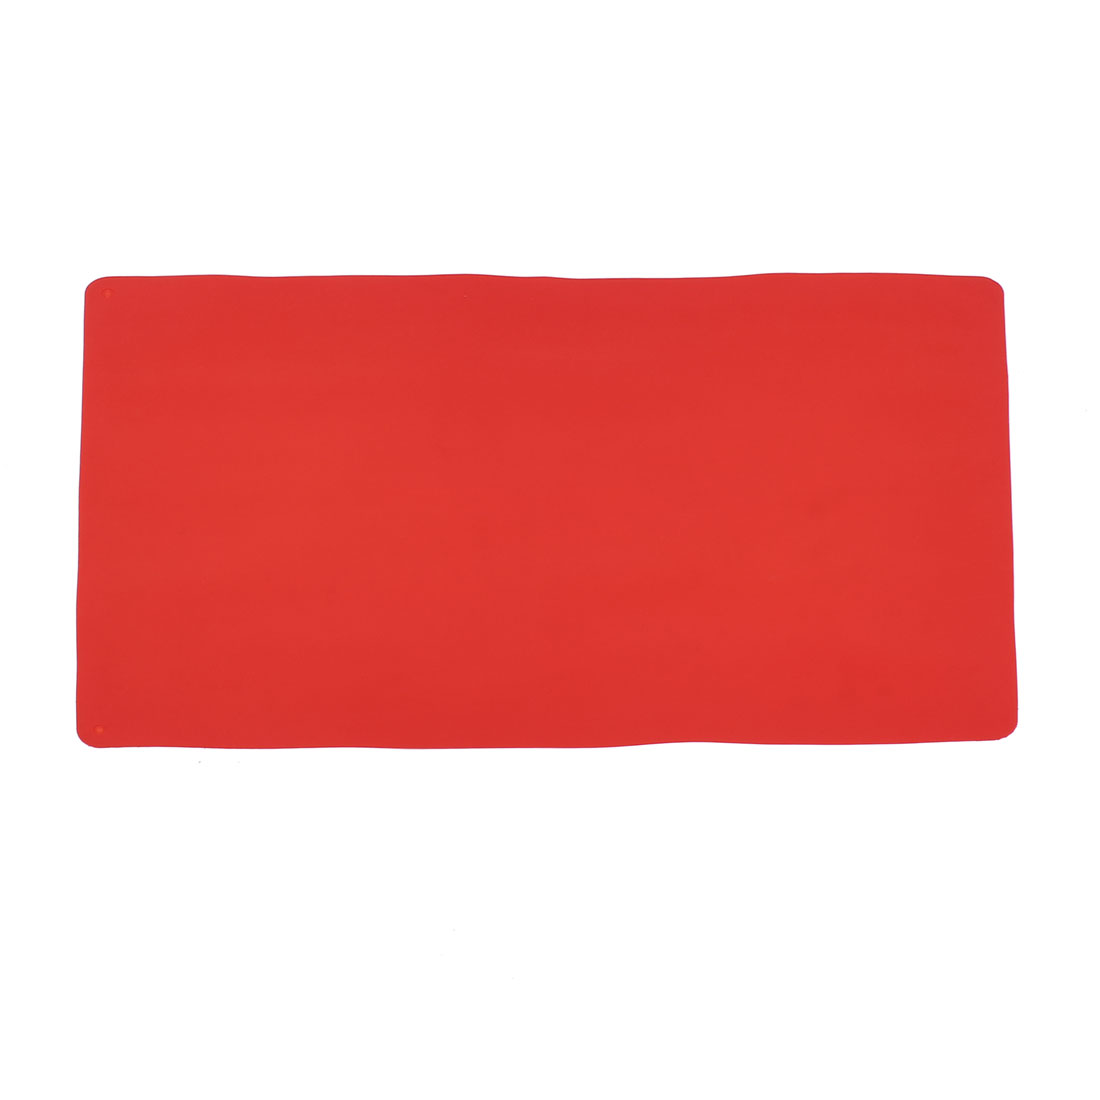 Rectangle Silicone Heat Resistance Cup Pot Bowl Table Mat Pad Coaster Red